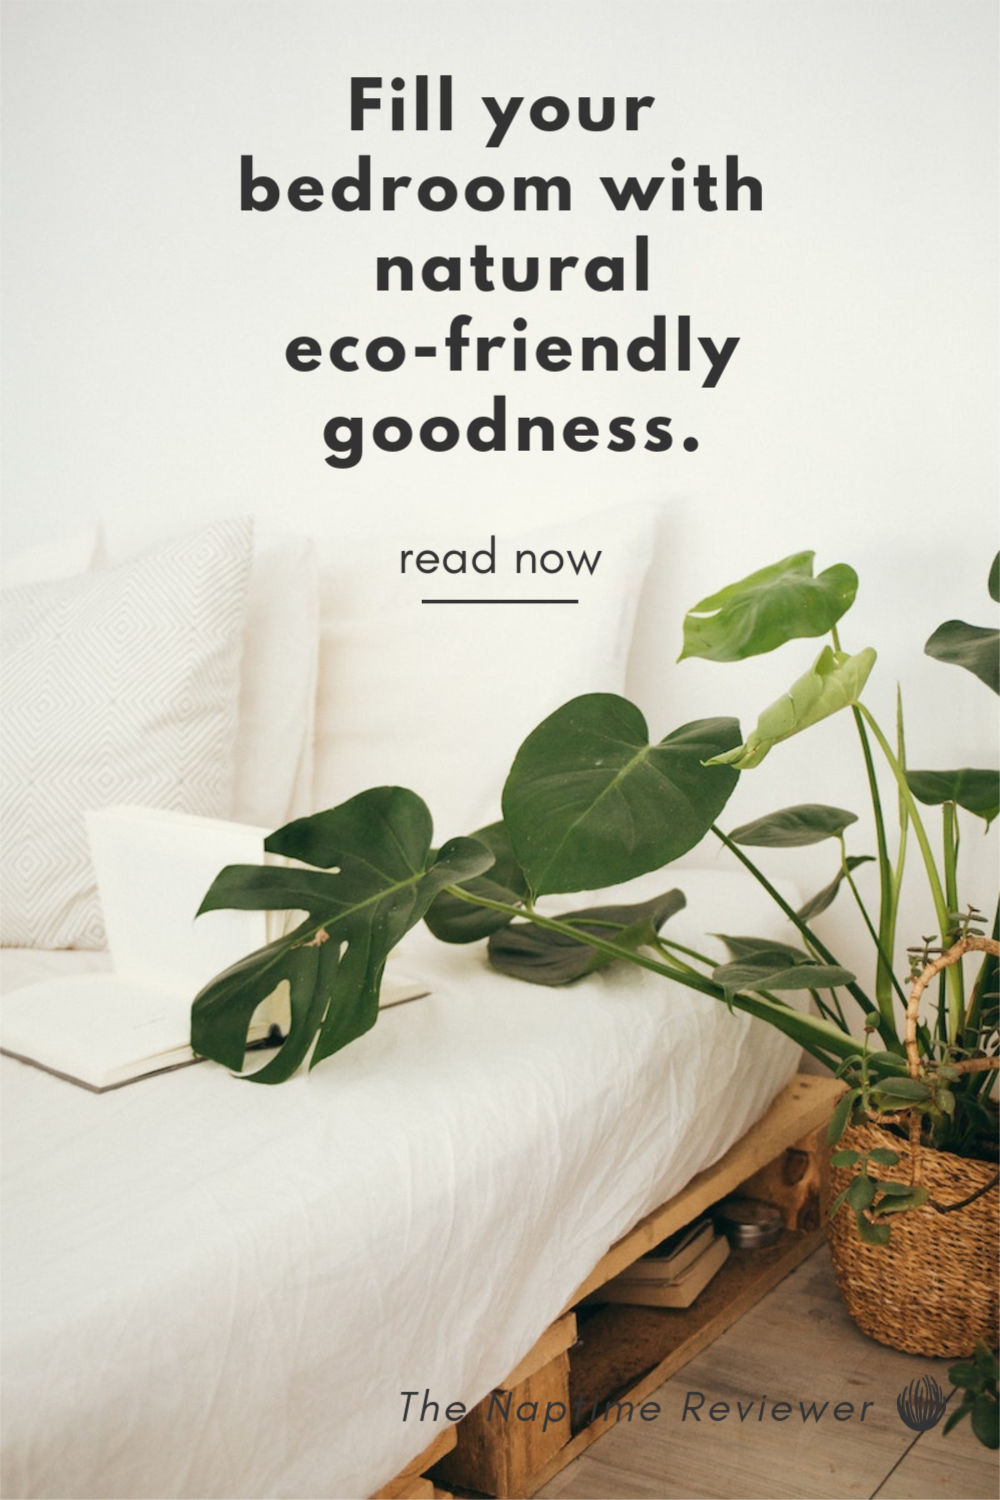 Fill your bedroom with natural, eco-friendly goodness.